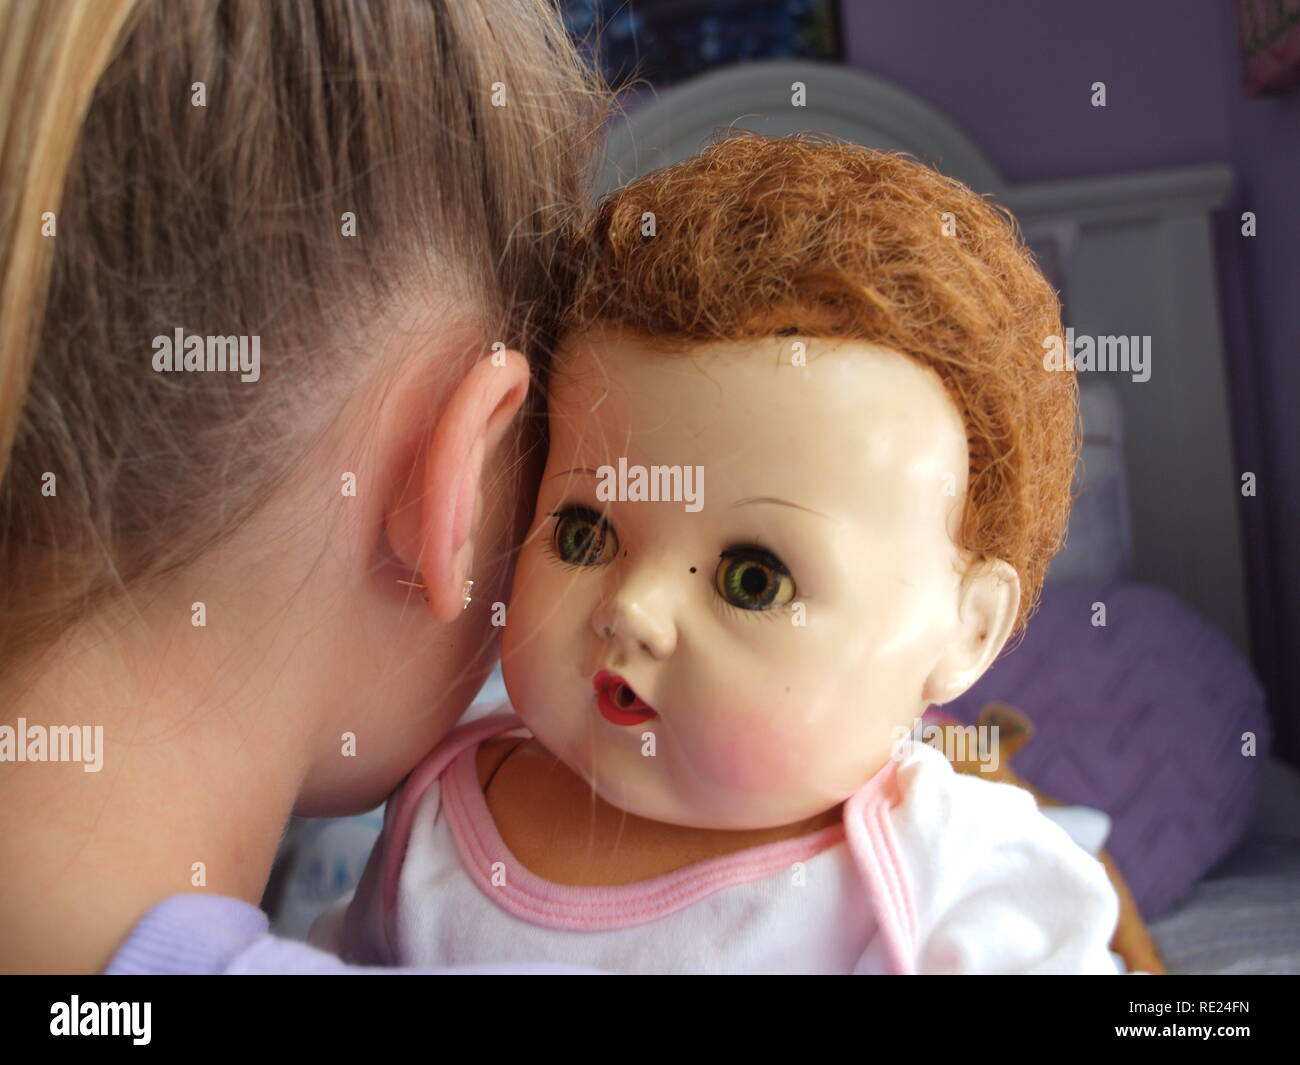 This images includes on original Tiny Tears doll which has been handed down from the young girls grandmother to her. The doll is original piece. Stock Photo